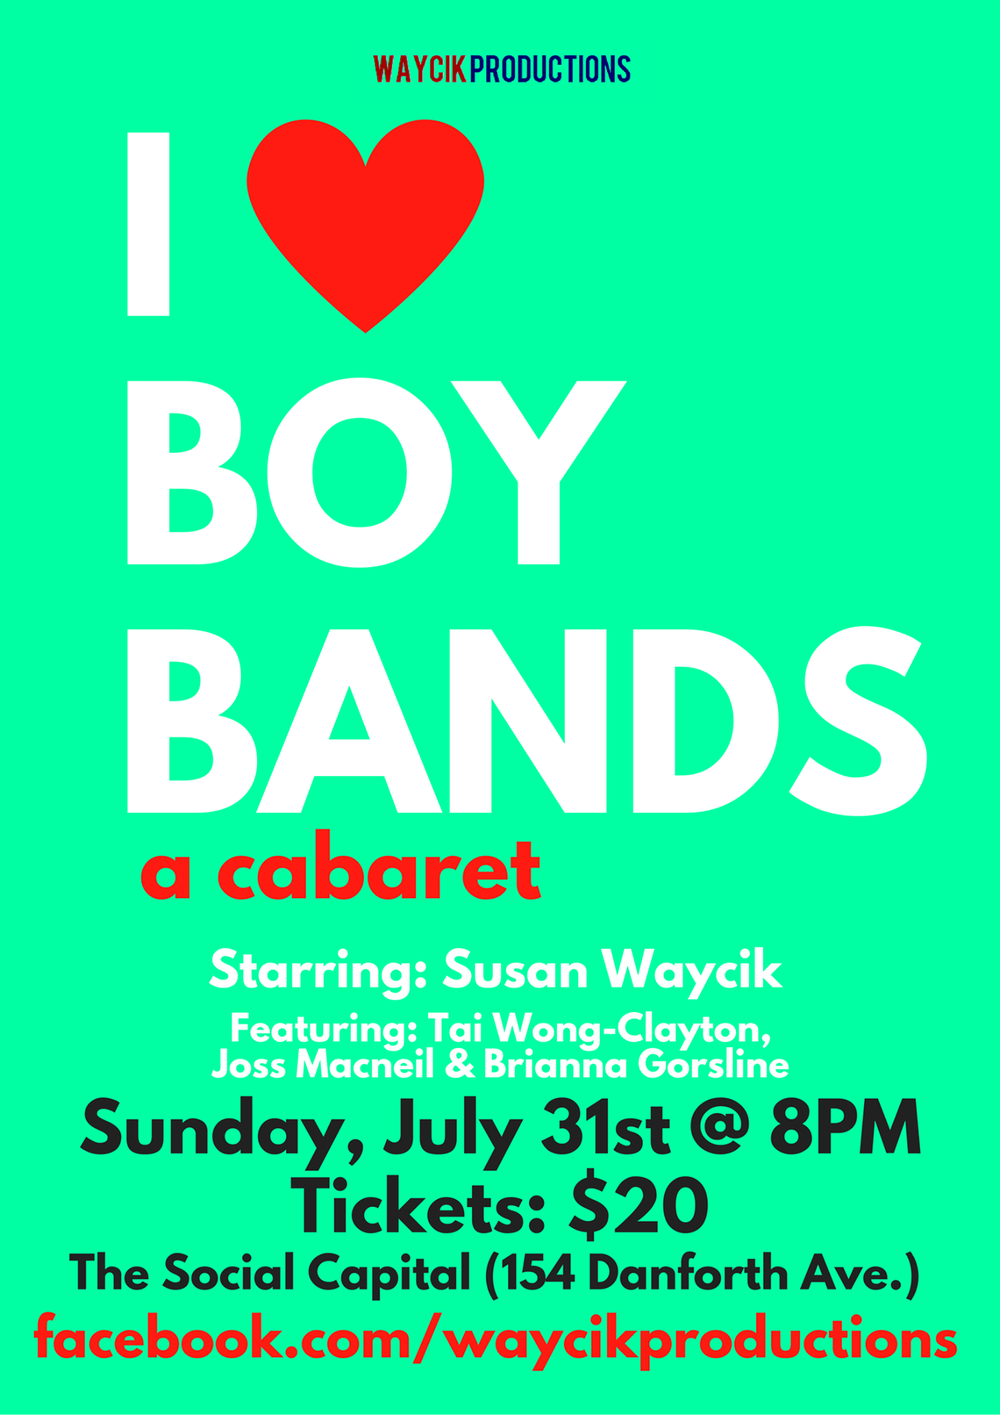 I (heart) Boy Bands - July 31, 2016 at The Social CapitalI (Heart) Boy Bands was a cabaret about life, laughter, loss & love, told through iconic songs originally performed by boy bands.Growing up, all Susan Waycik wanted was to be a pop singer — specifically in a boy band.On July 31st, 2016 she fulfilled her dream by becoming a one-woman boy band. Performing all the best hits from the Backstreet Boys to One Direction to N*Sync and everyone in between.Featuring Tai Wong Clayton, Joss MacNeil & Brianna Gorsline